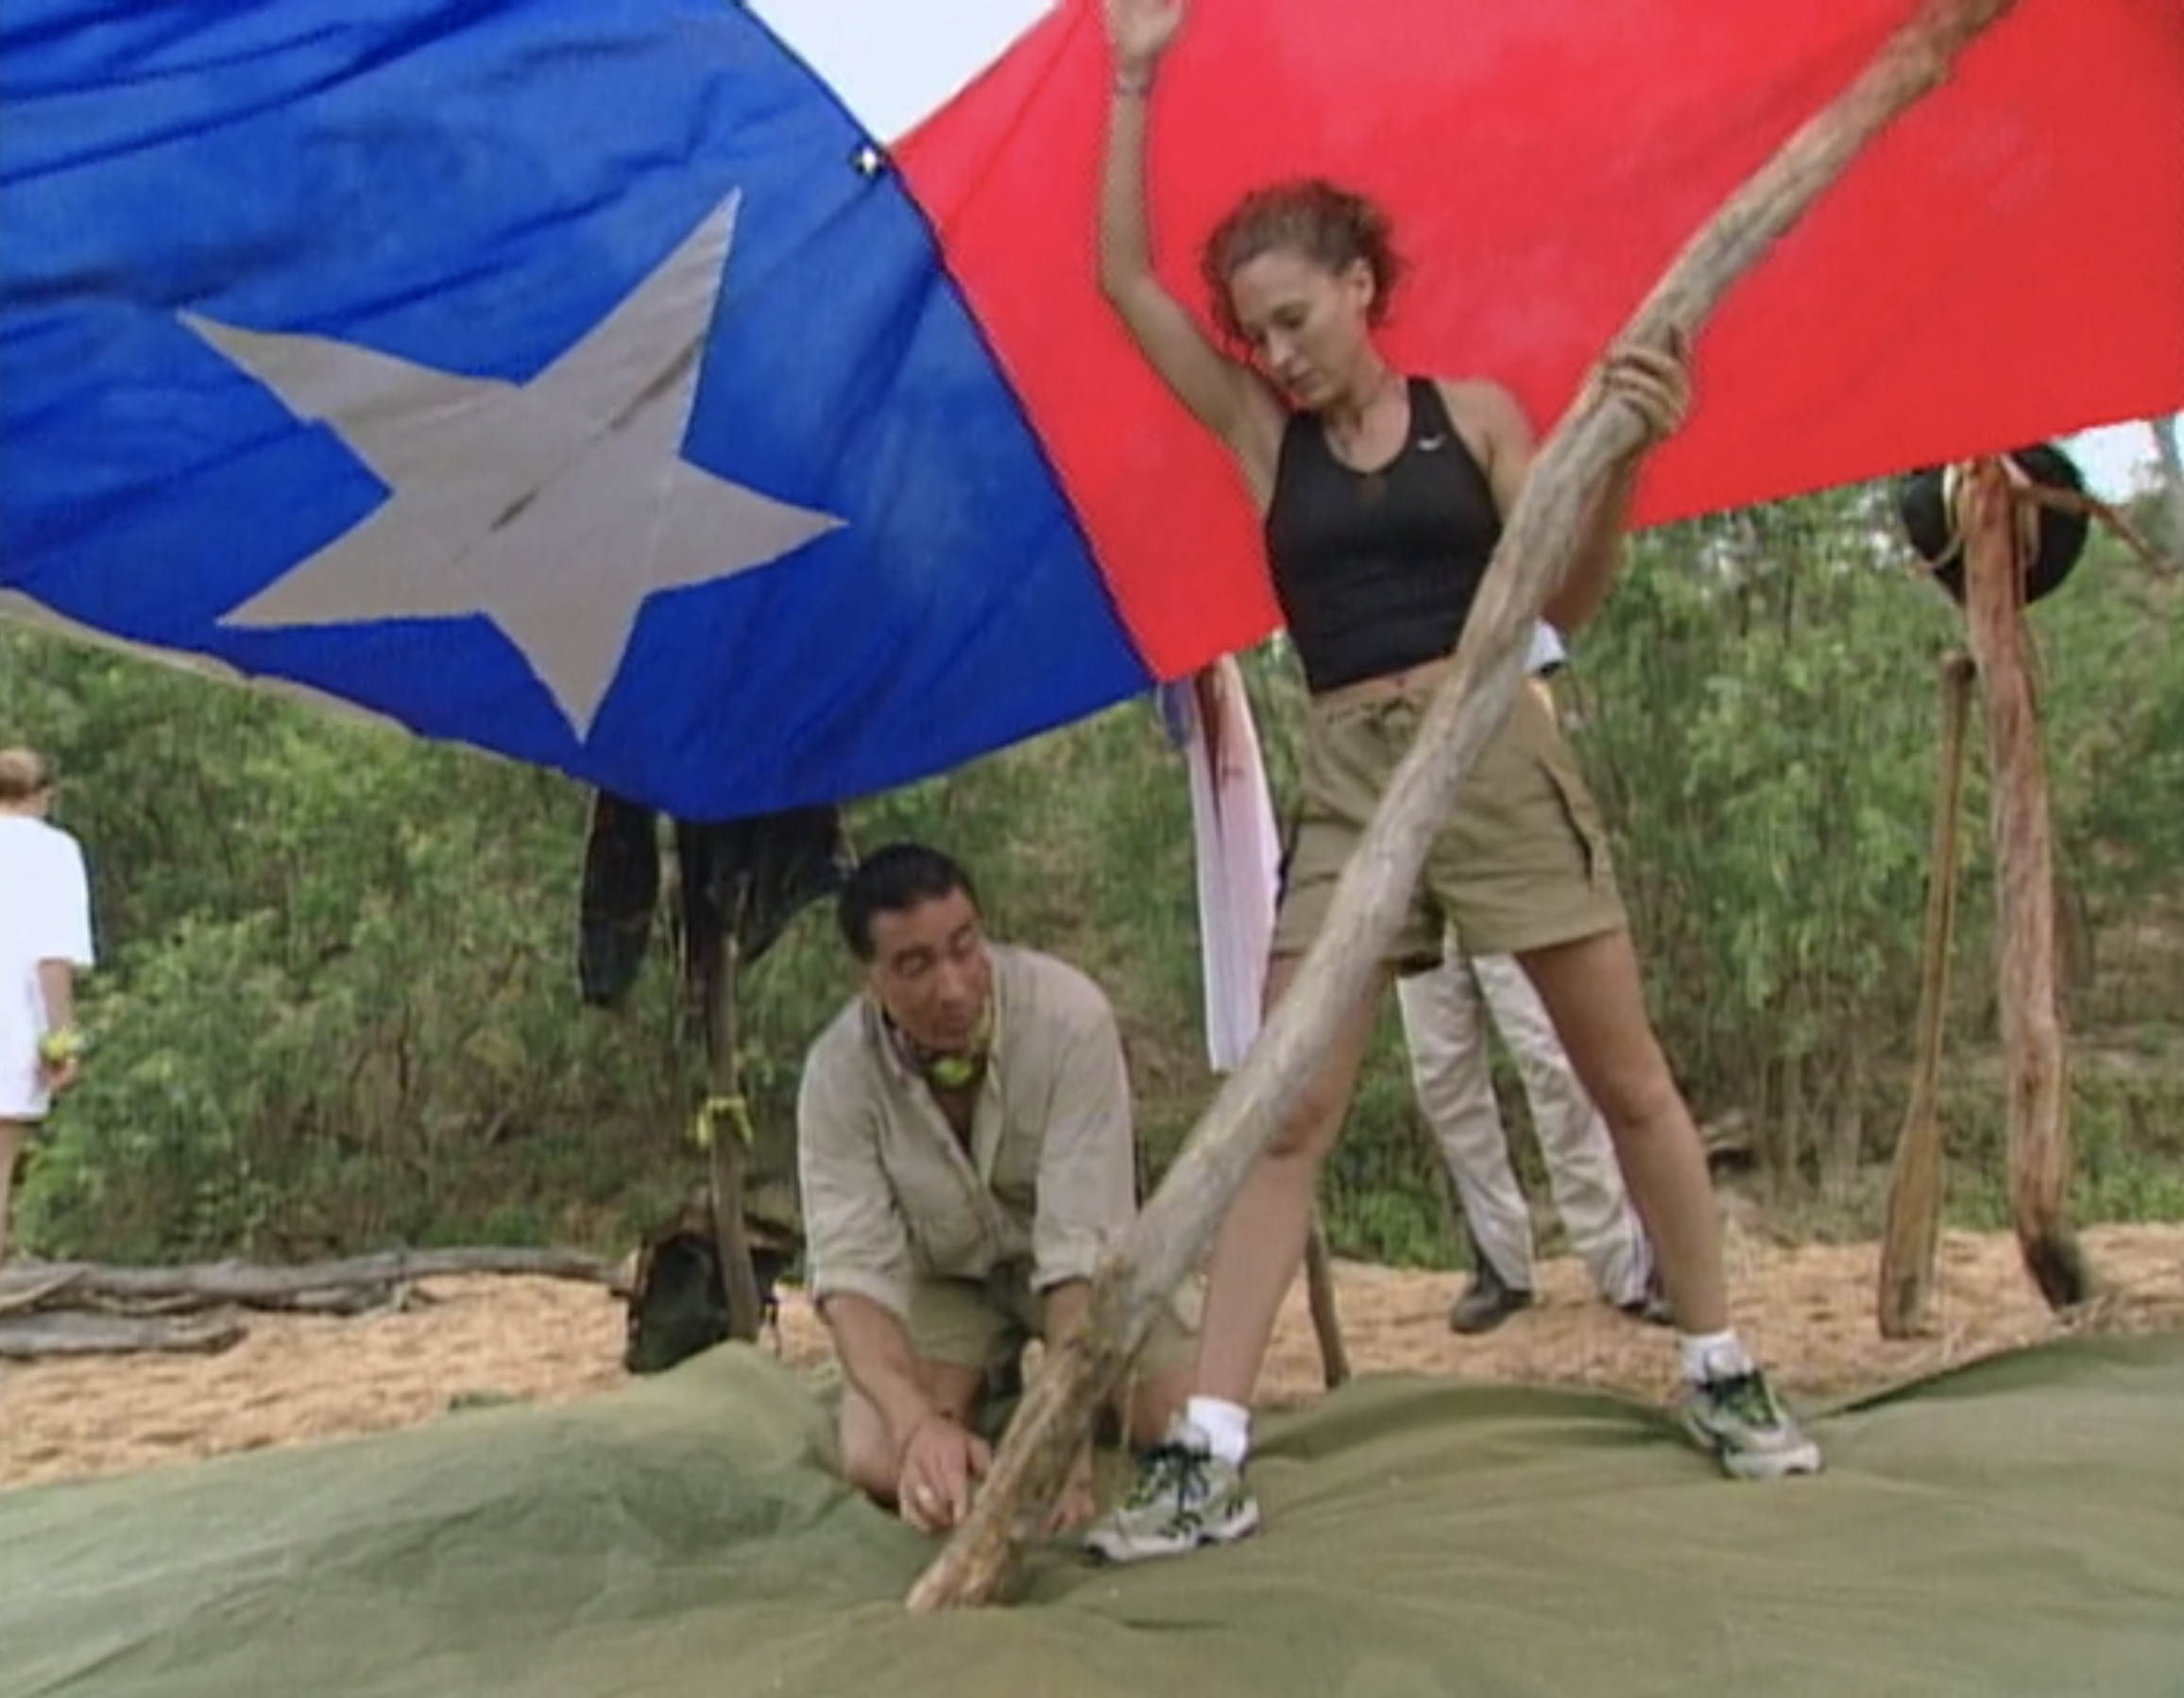 Keith Famie and Jerri Manthey use a large Texas flag to build a shelter on Survivor: The Australian Outback